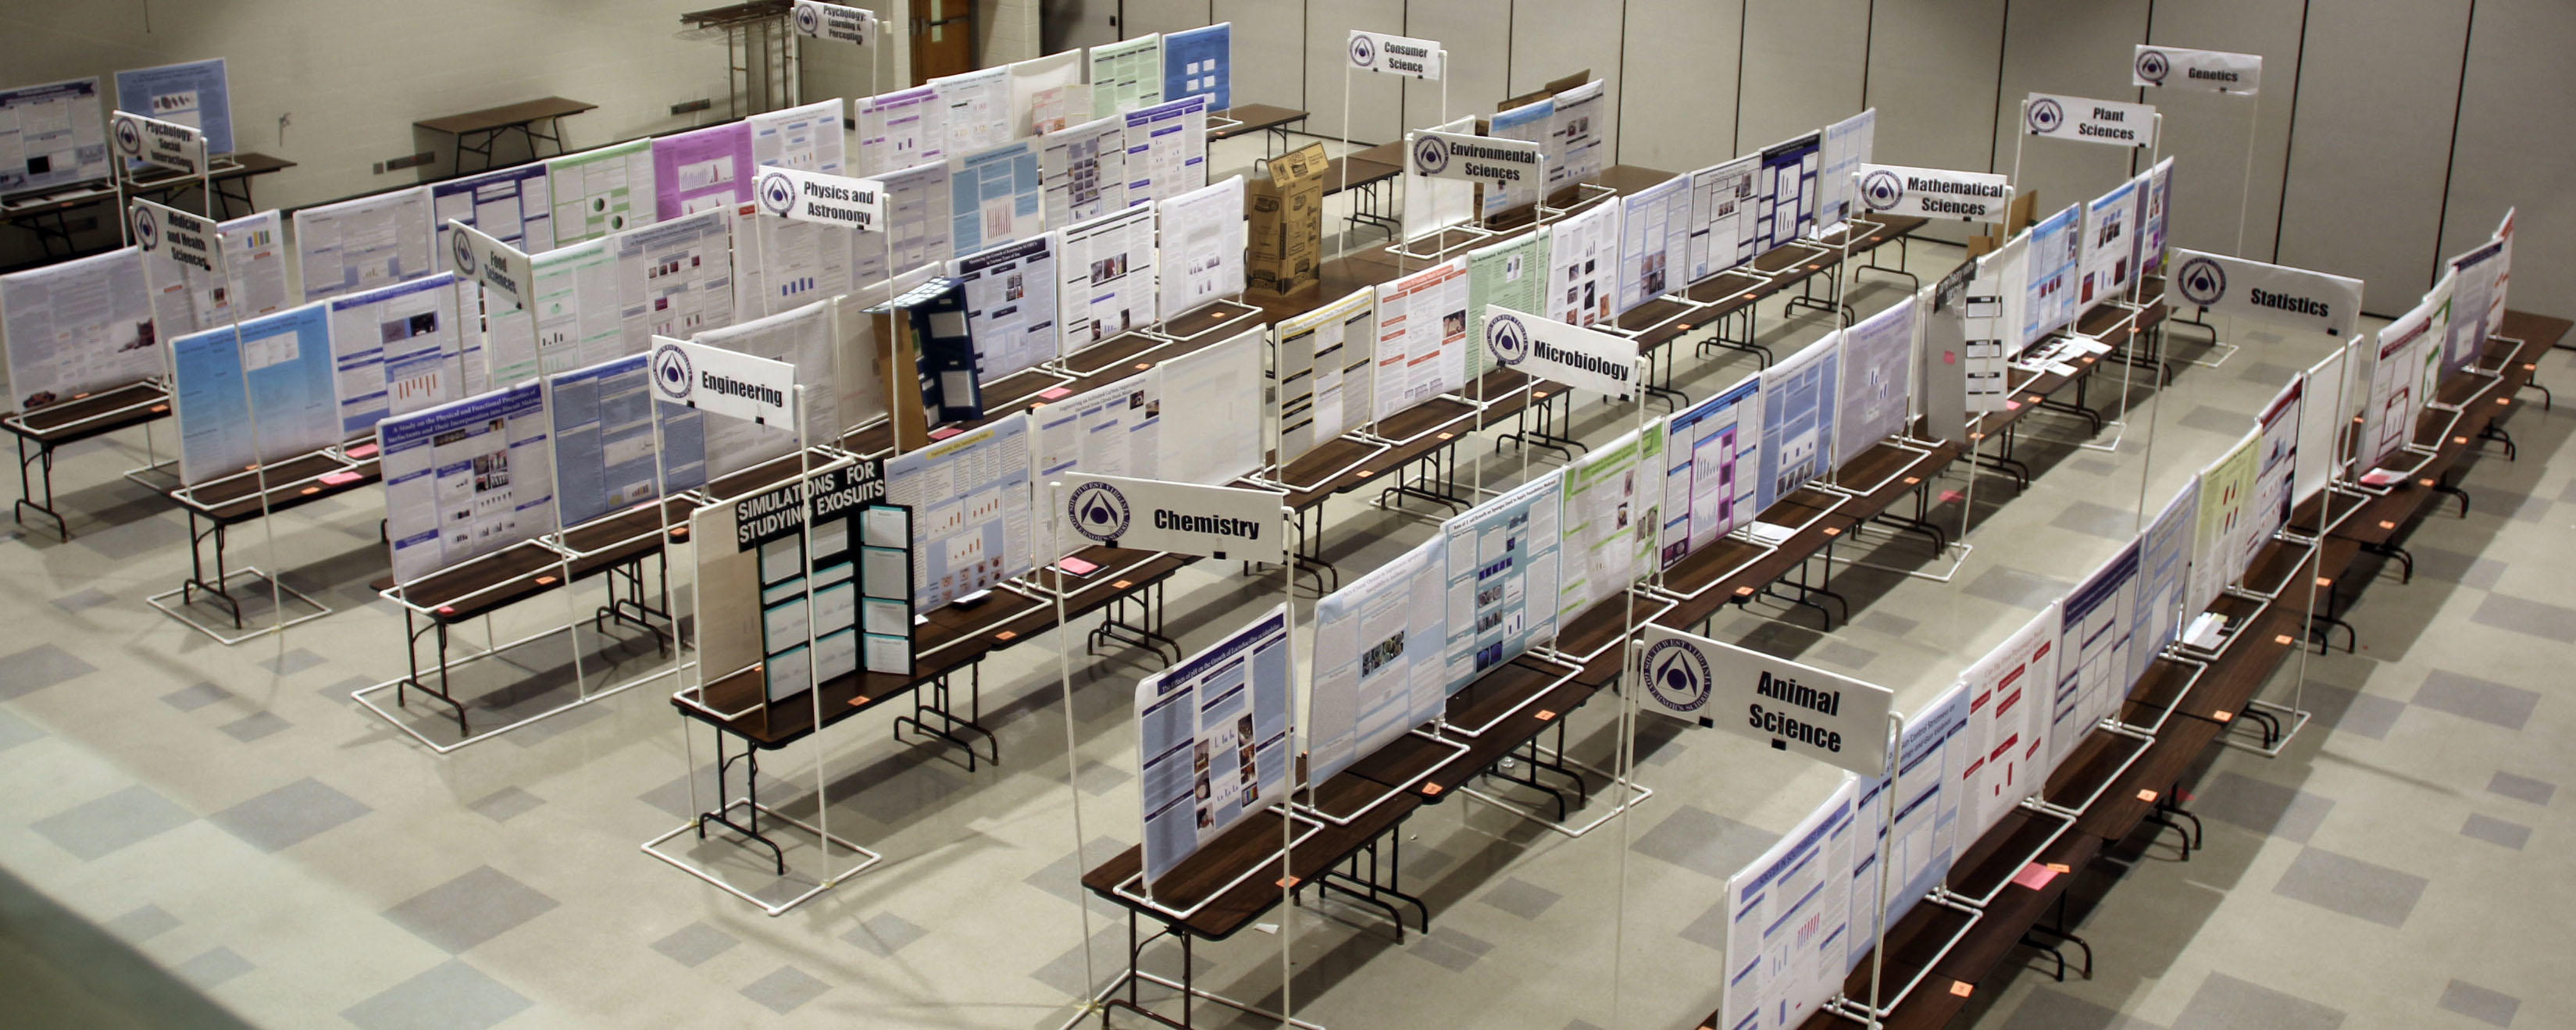 Project displays at the Southwest Virginia Governor's School